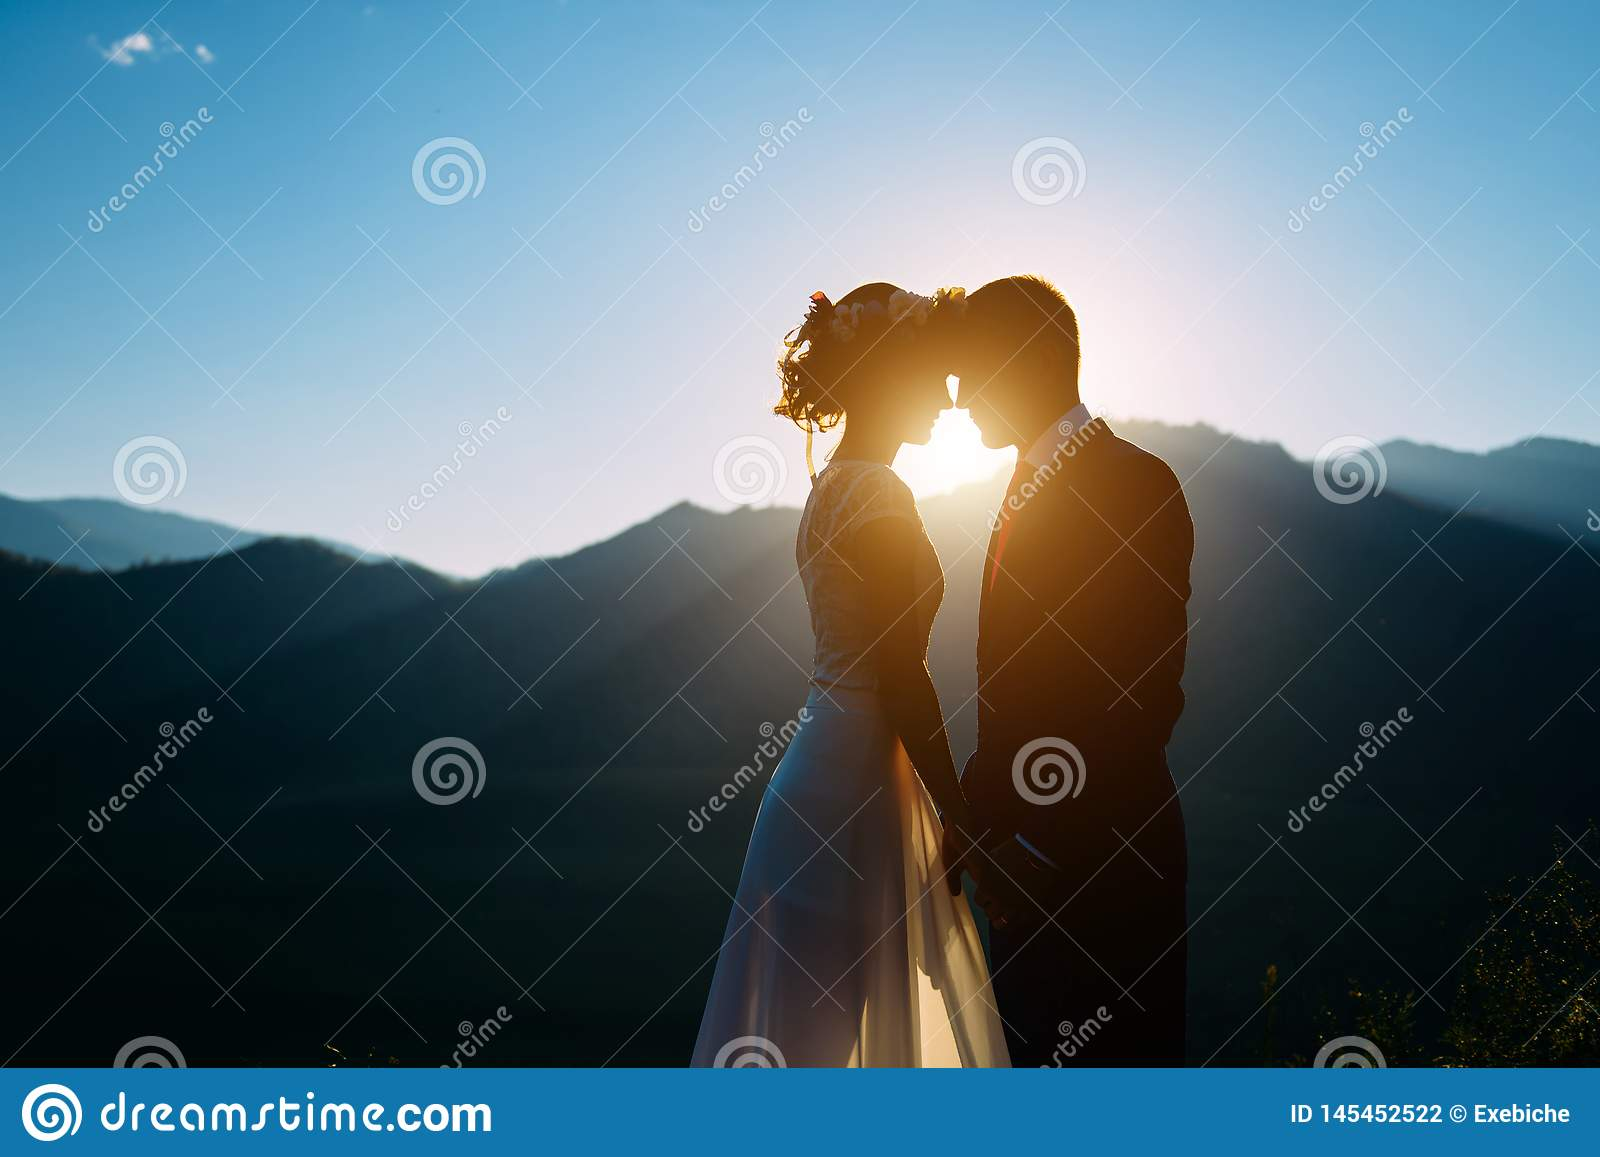 Happy wedding couple staying and kissing over the beautiful landscape with mountains